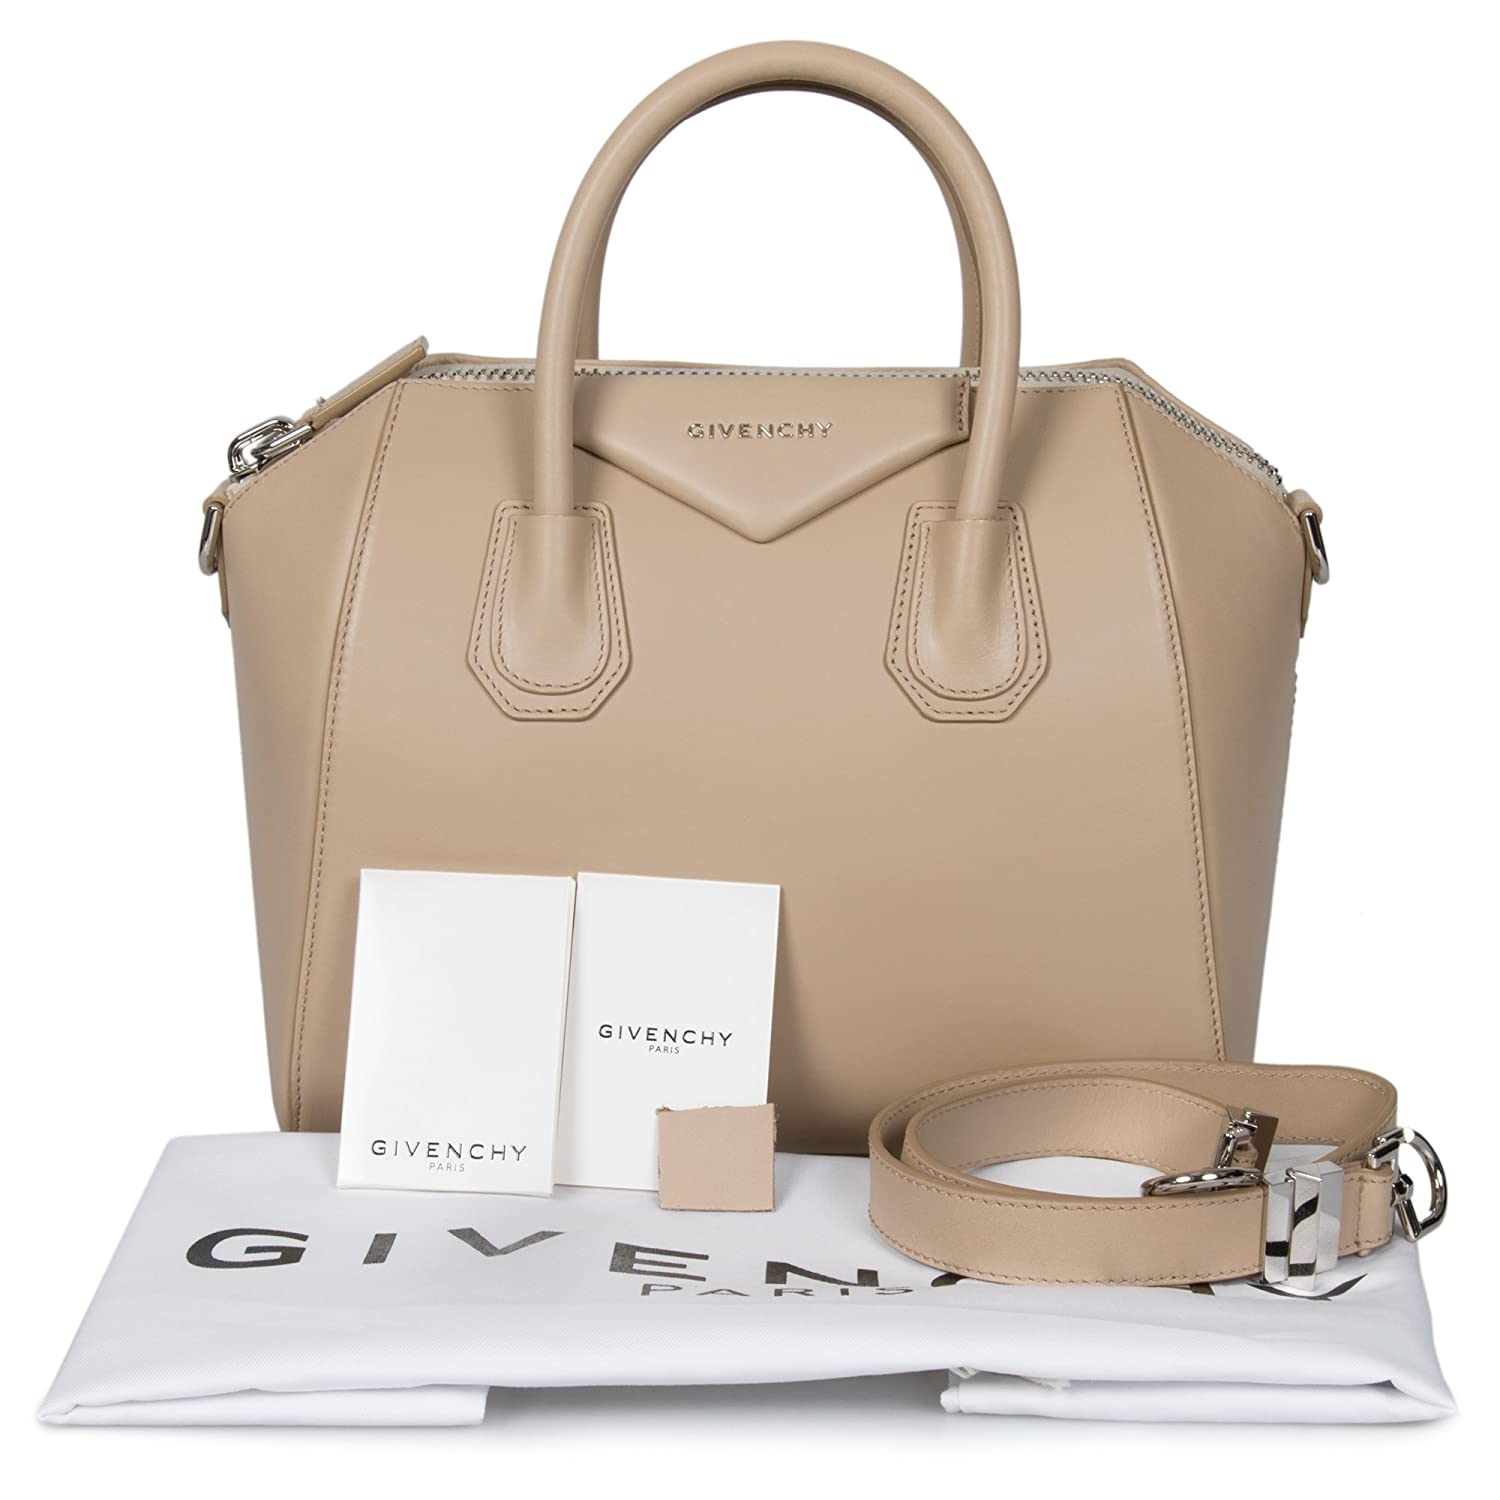 aeeefc2782 Givenchy Antigona Small Beige Leather Satchel: Givenchy: Amazon.ca: Shoes &  Handbags